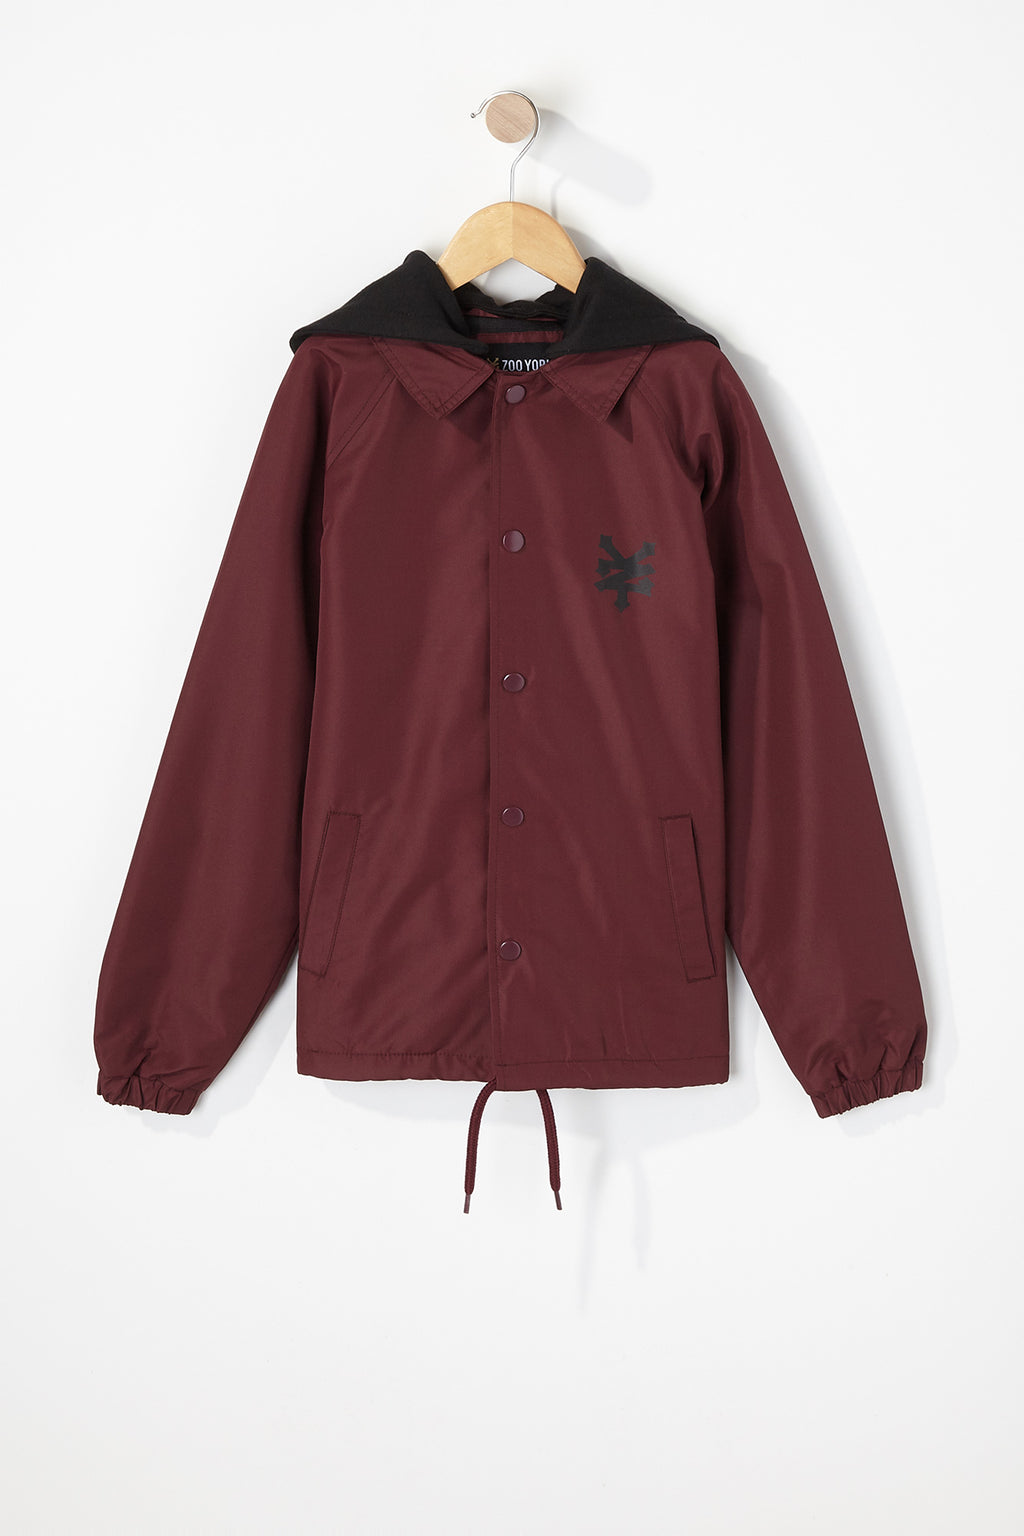 Zoo York Boys Coach Jacket